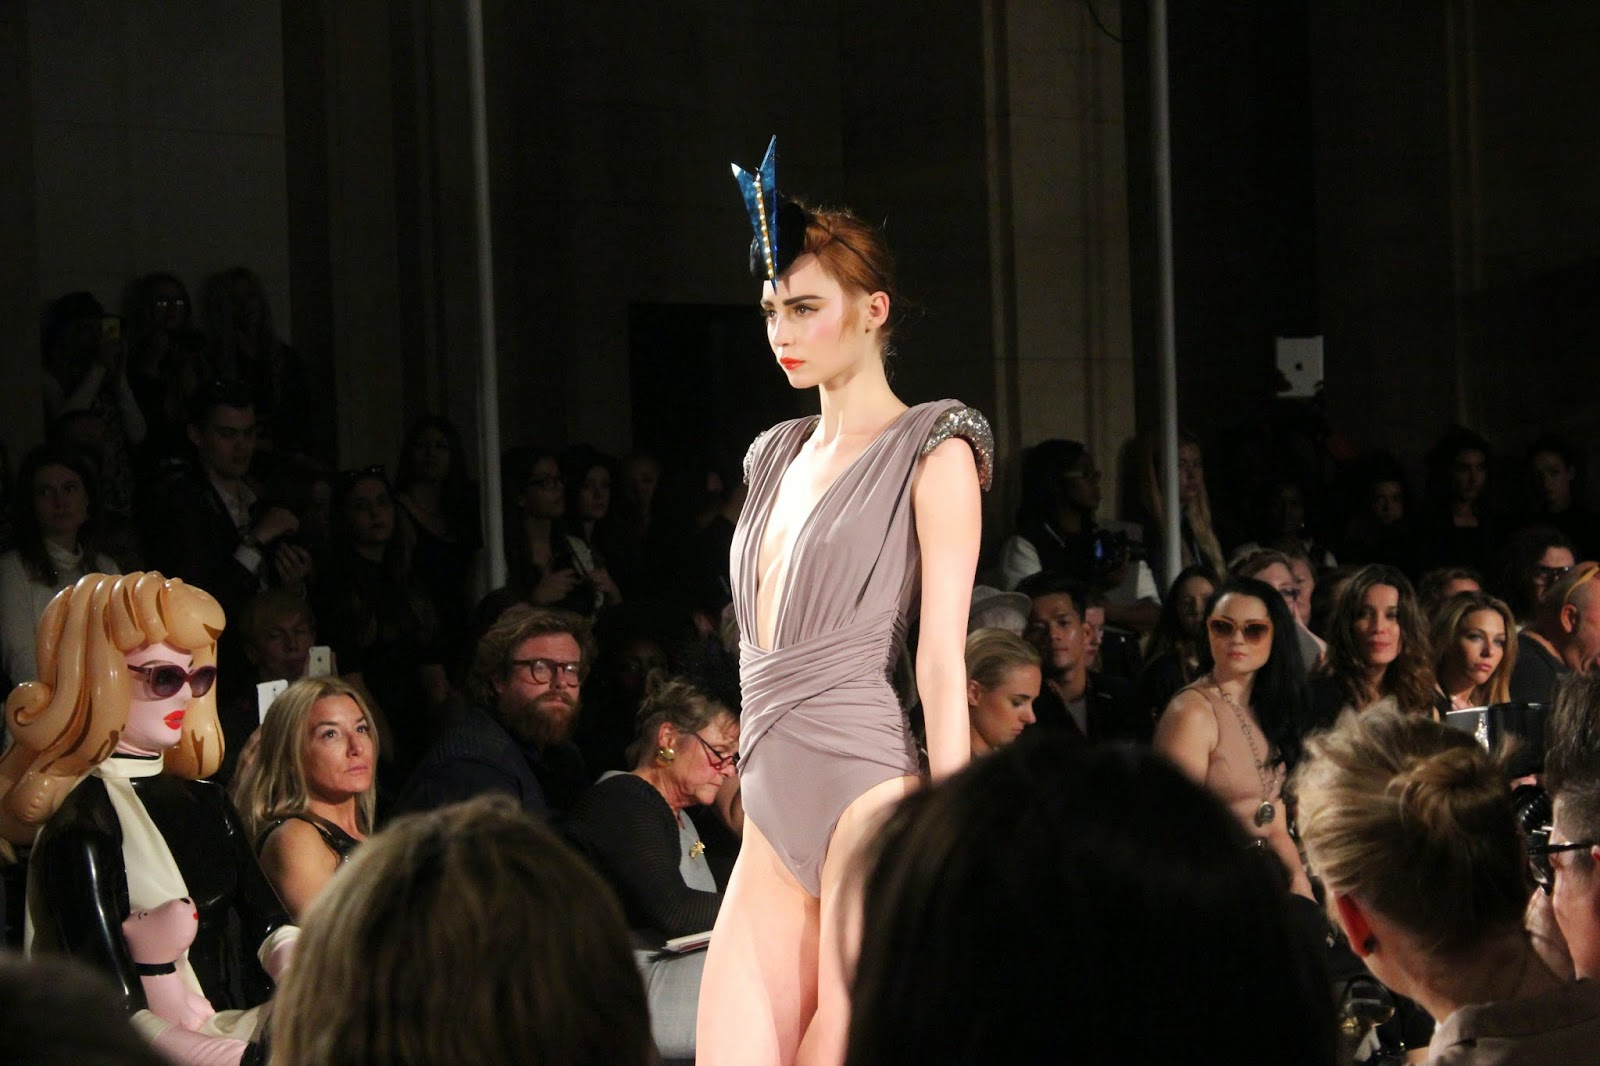 london-fashion-week-2014-lfw-spring-summer-2015-blogger-fashion-freemasons hall-fashion-scout-ashley-isham-catwalk-models-swimsuit